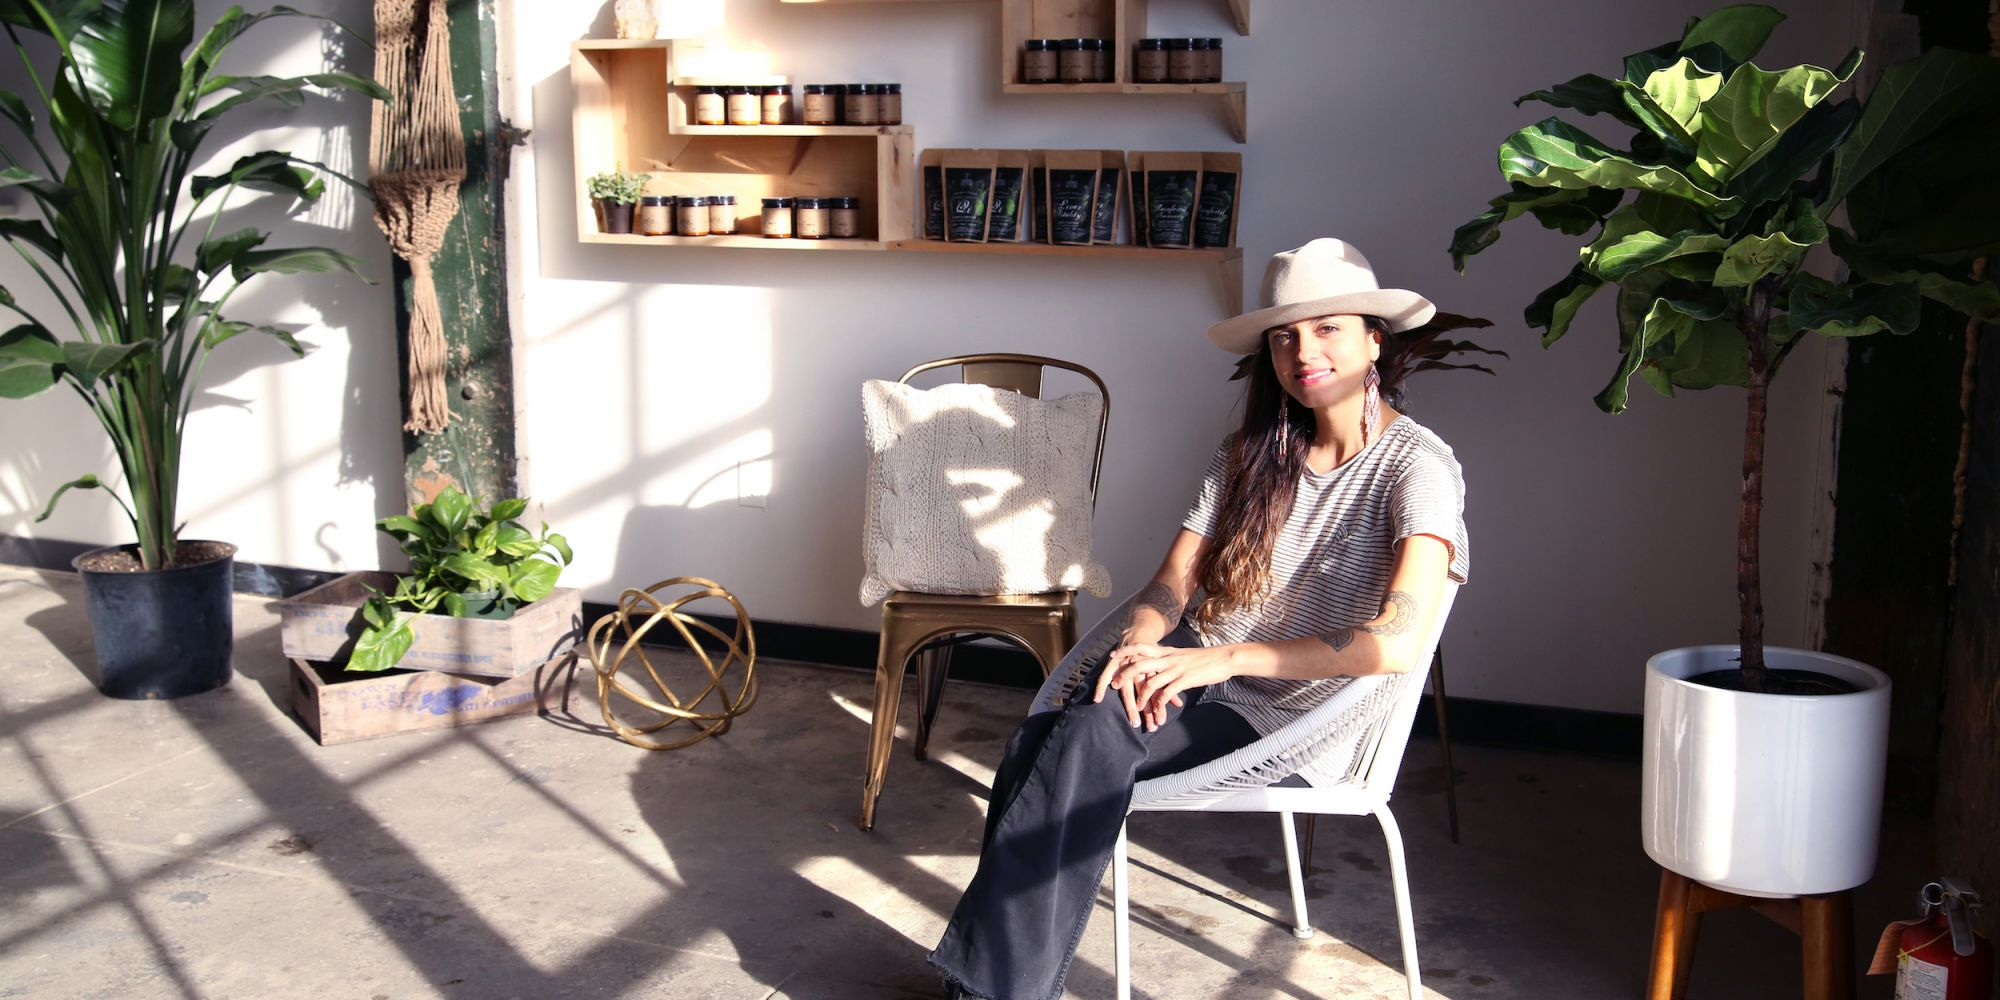 Putting The Green In Greenpoint: Anima Mundi Opens Apothecary And Factory In Brooklyn